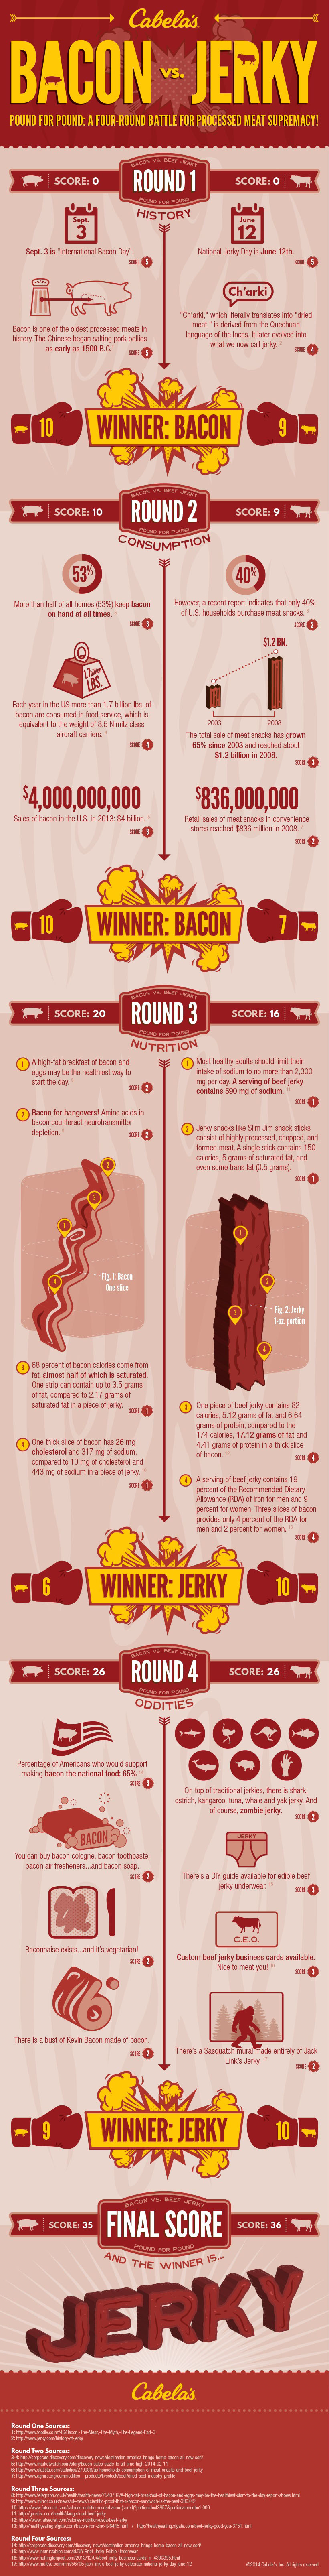 May the Best Meat Win: The Battle of Bacon Vs Jerky - Infographic